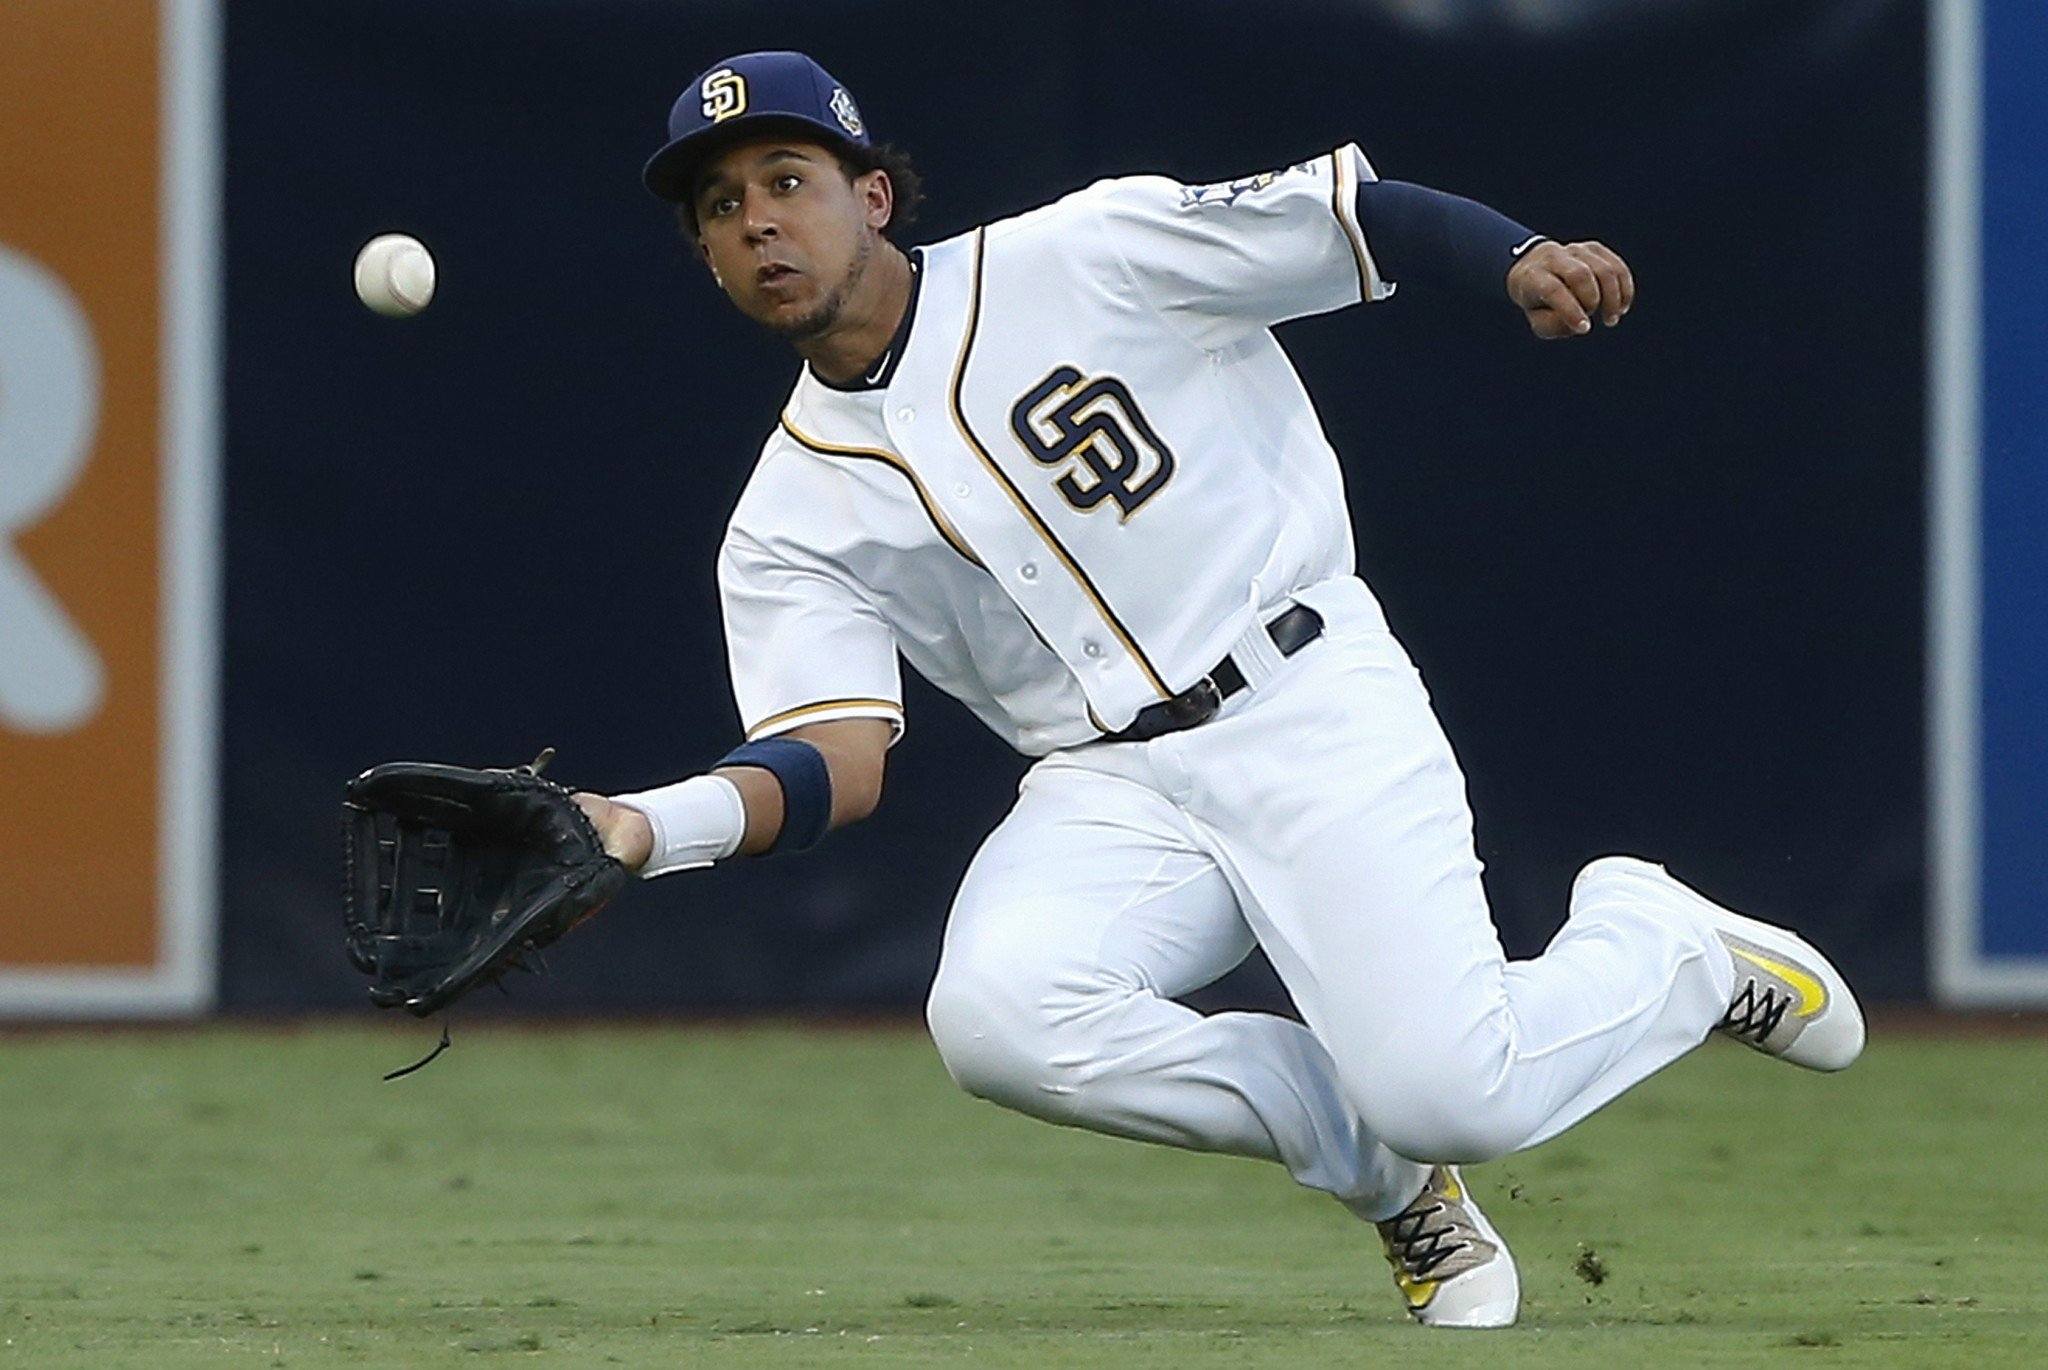 Jon Jay is the newest addition to the Cubs outfield. (AP)